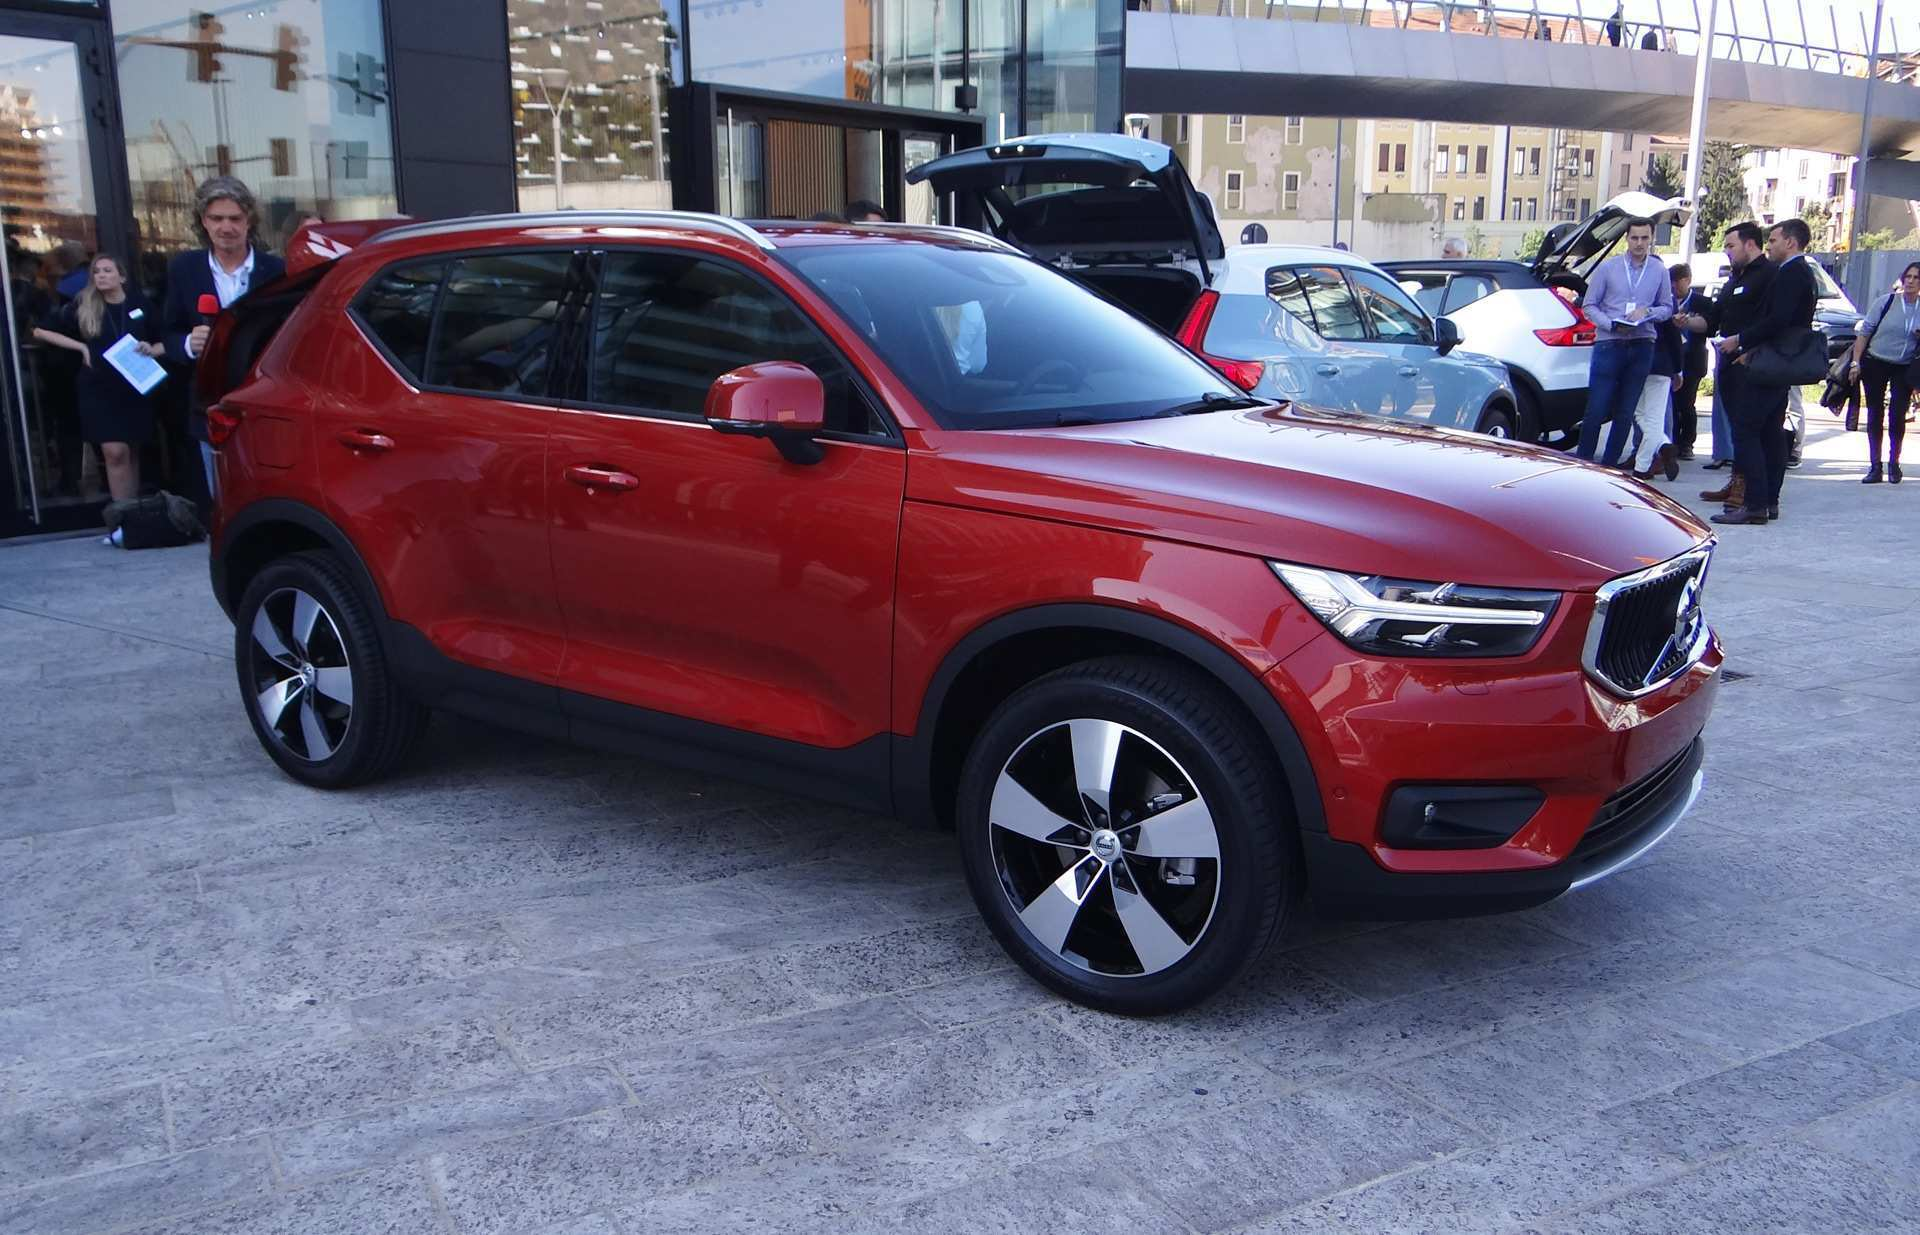 86 Best Review Electric Volvo 2019 Images for Electric Volvo 2019